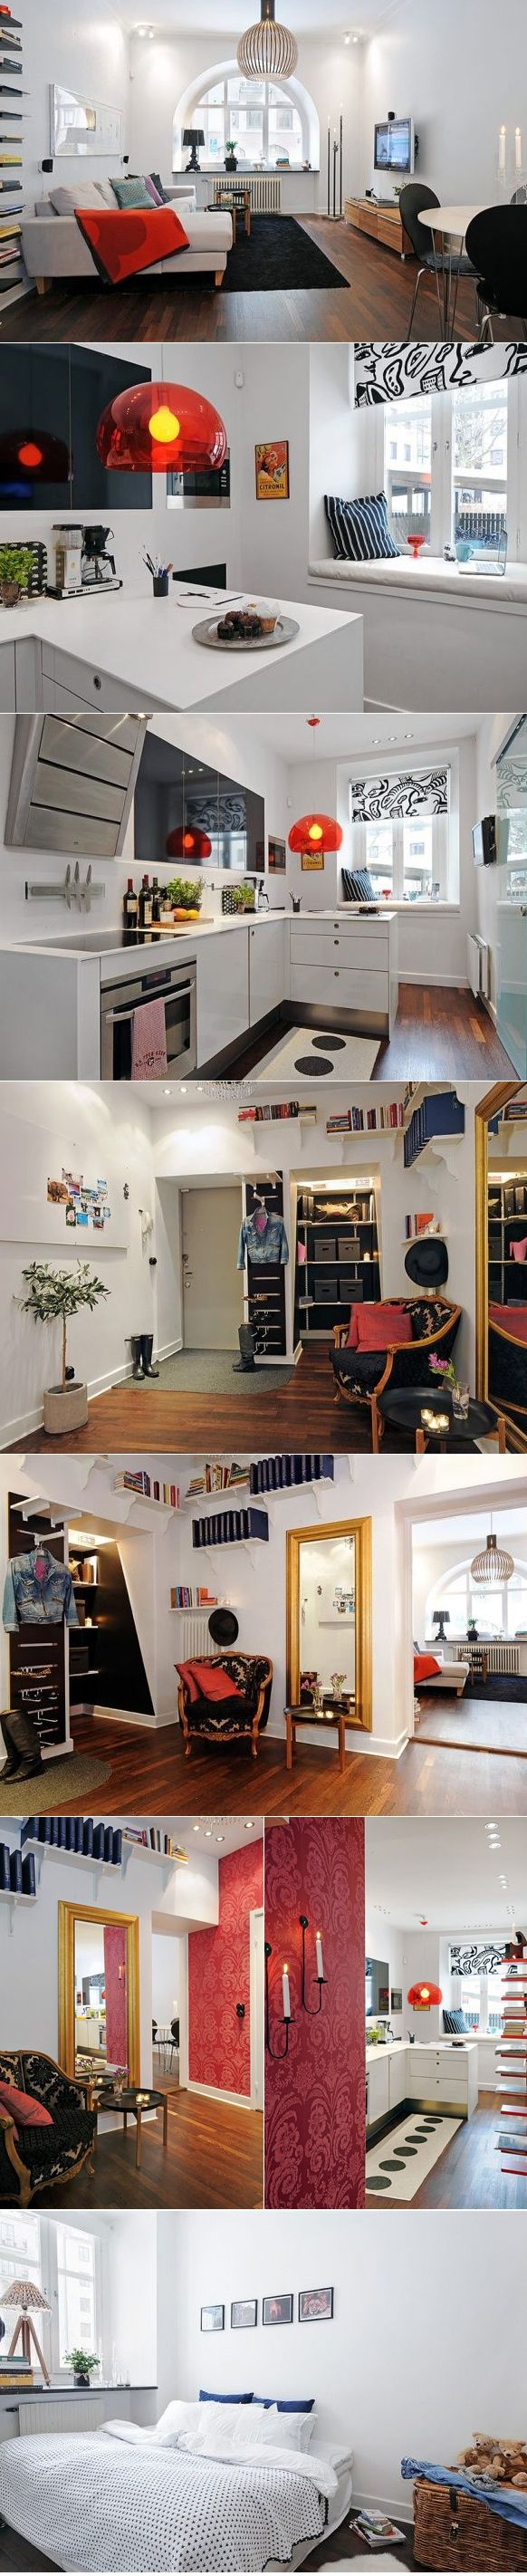 Ok, so it's not tiny. But, it gives me good ideas for making a small space feel open.